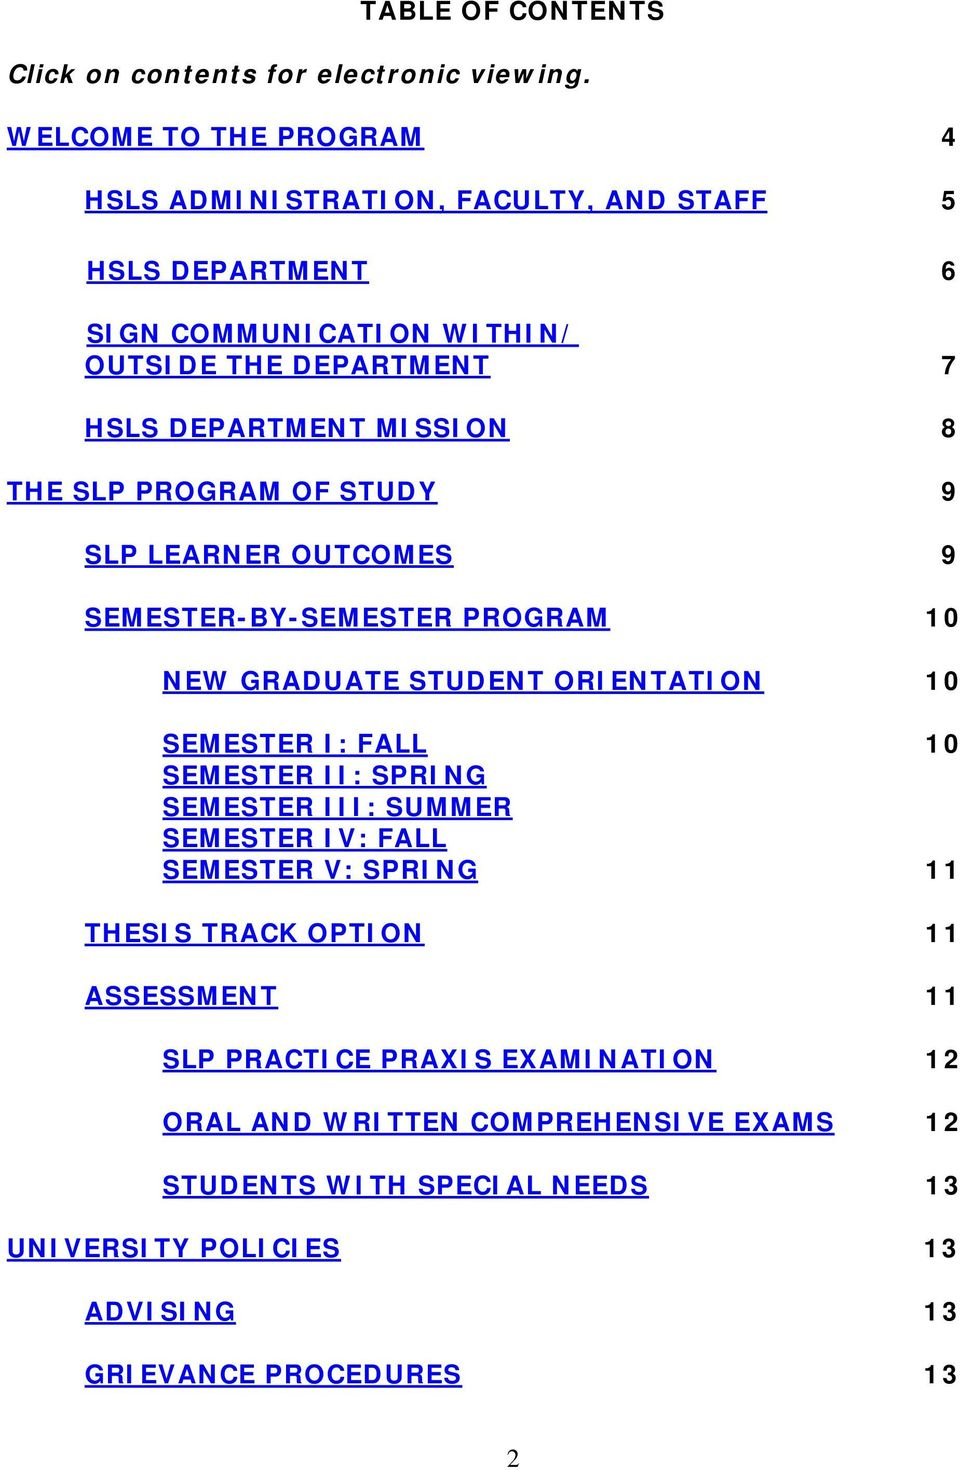 8 THE SLP PROGRAM OF STUDY 9 SLP LEARNER OUTCOMES 9 SEMESTER-BY-SEMESTER PROGRAM 10 NEW GRADUATE STUDENT ORIENTATION 10 SEMESTER I: FALL 10 SEMESTER II: SPRING